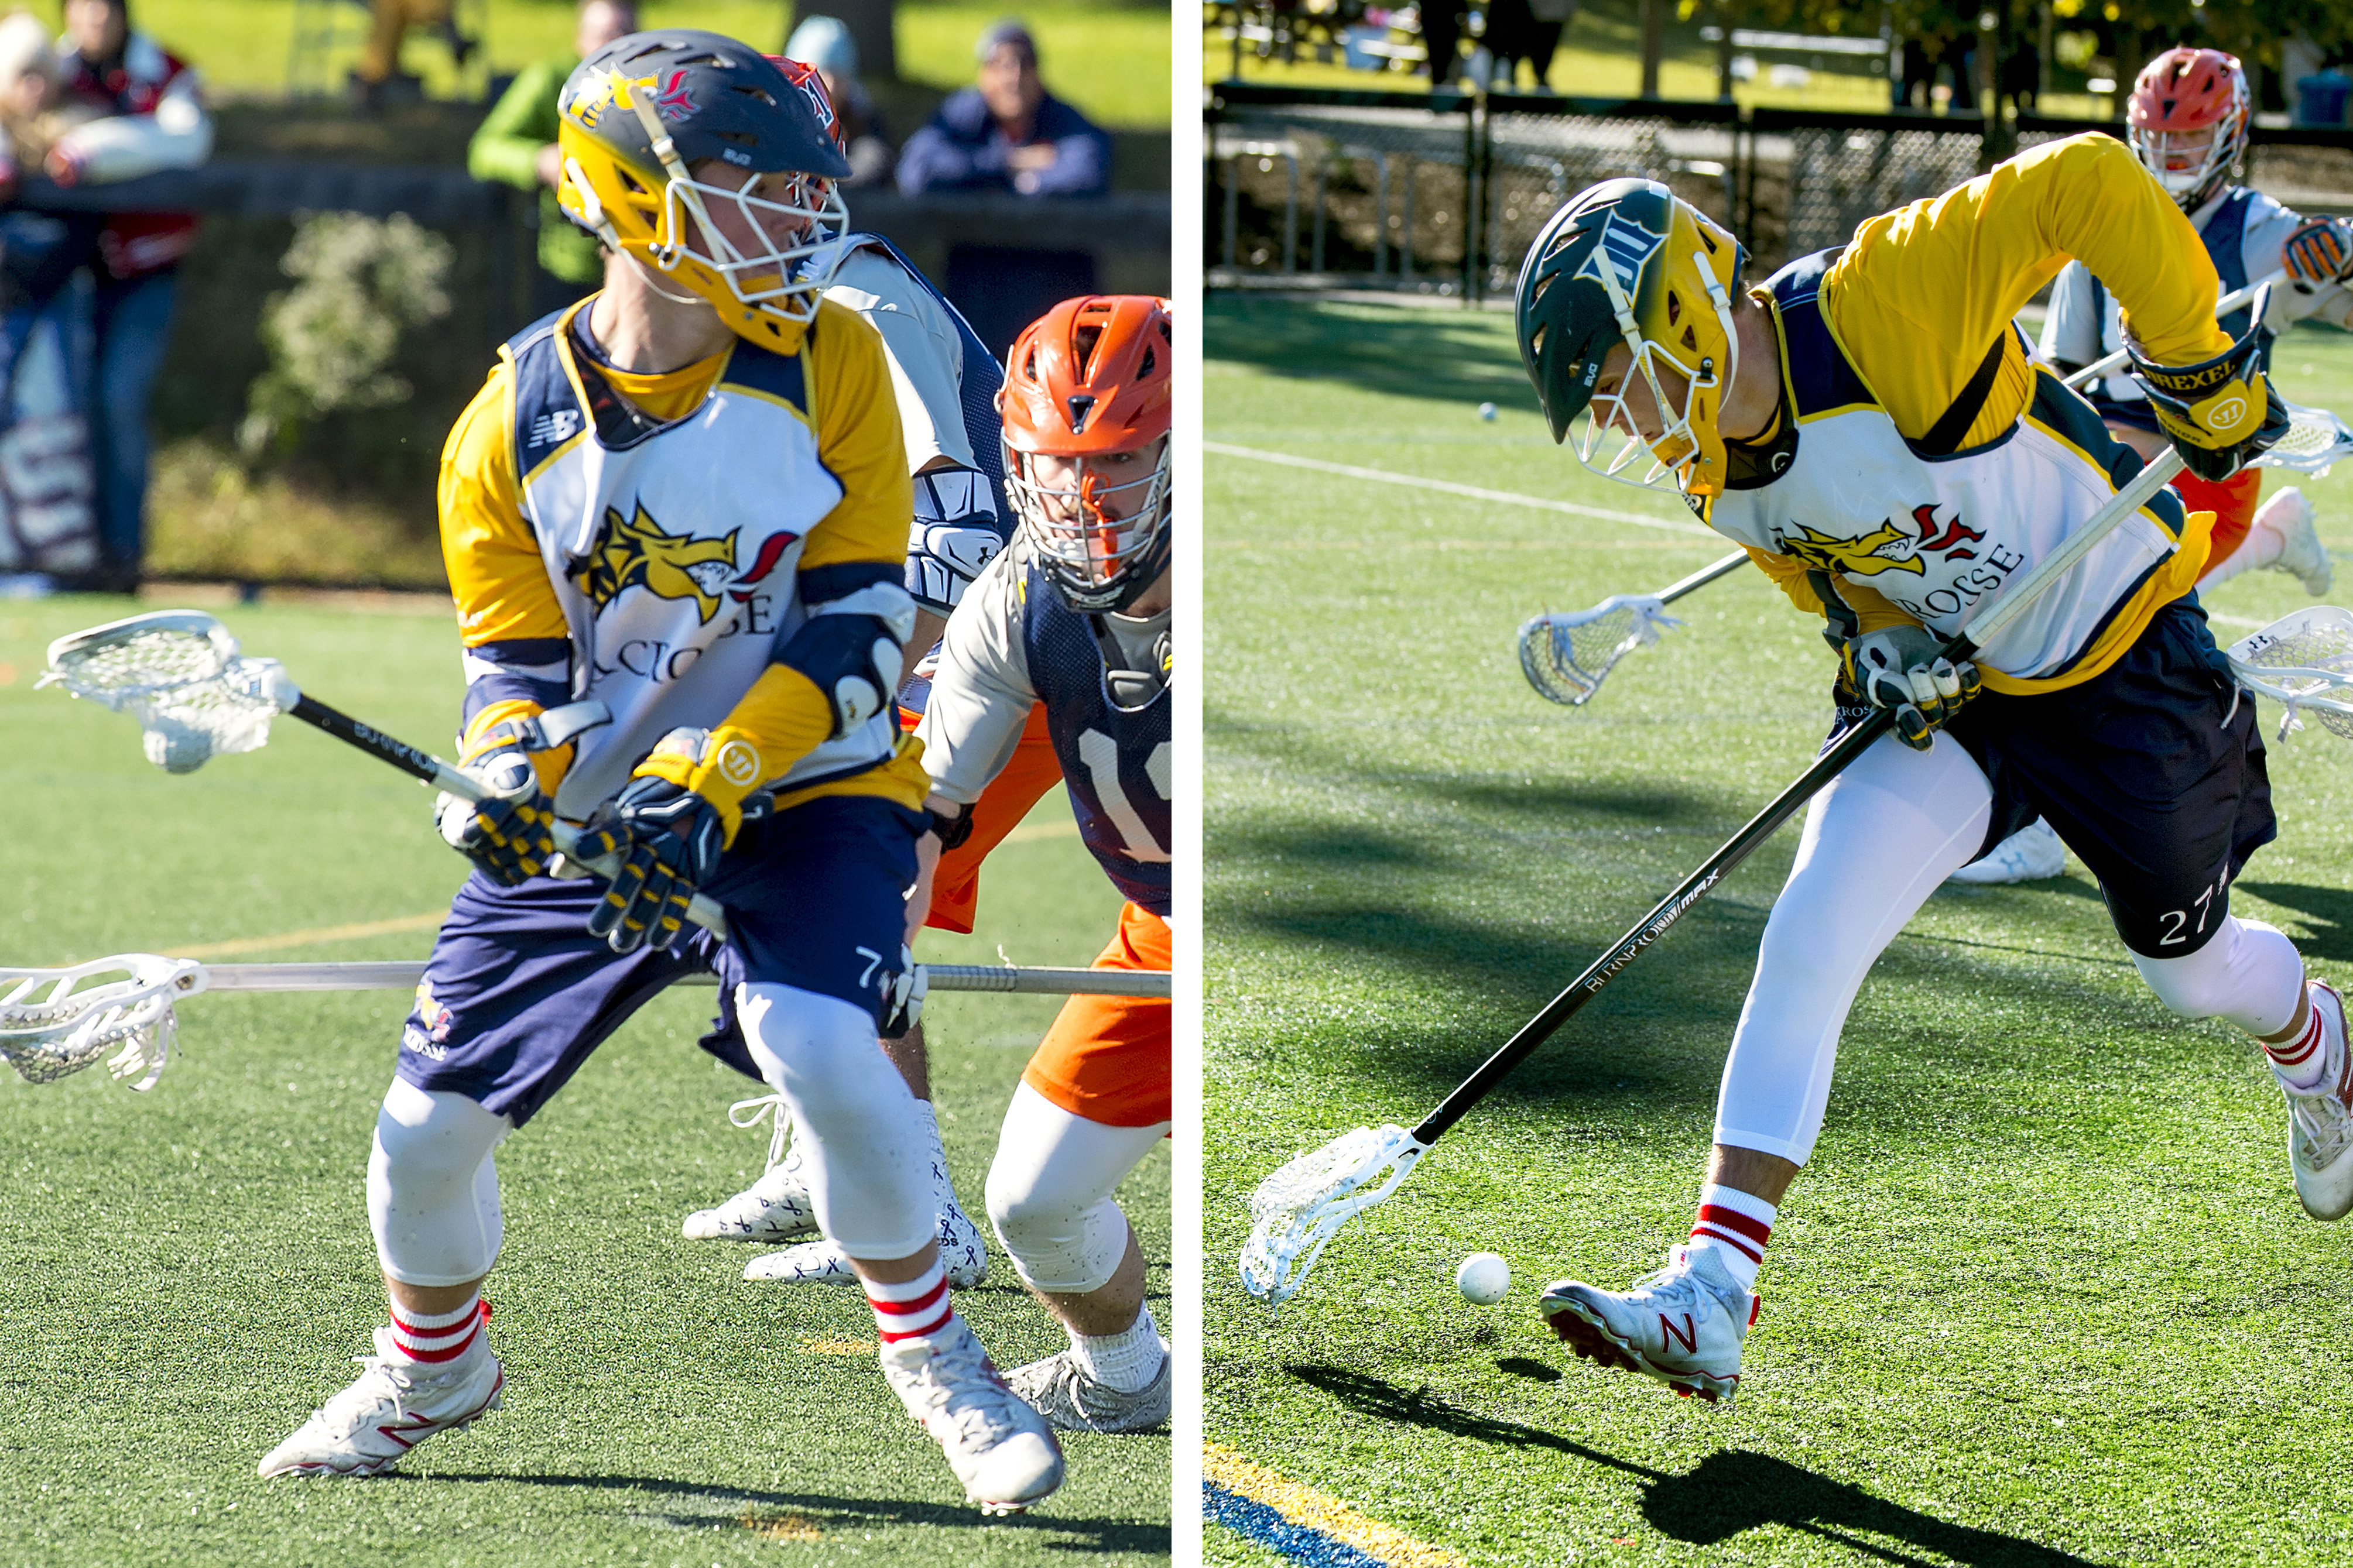 Drexel players Nick Fox (left) and Nolan Fox in action Sunday at the University City Classic.